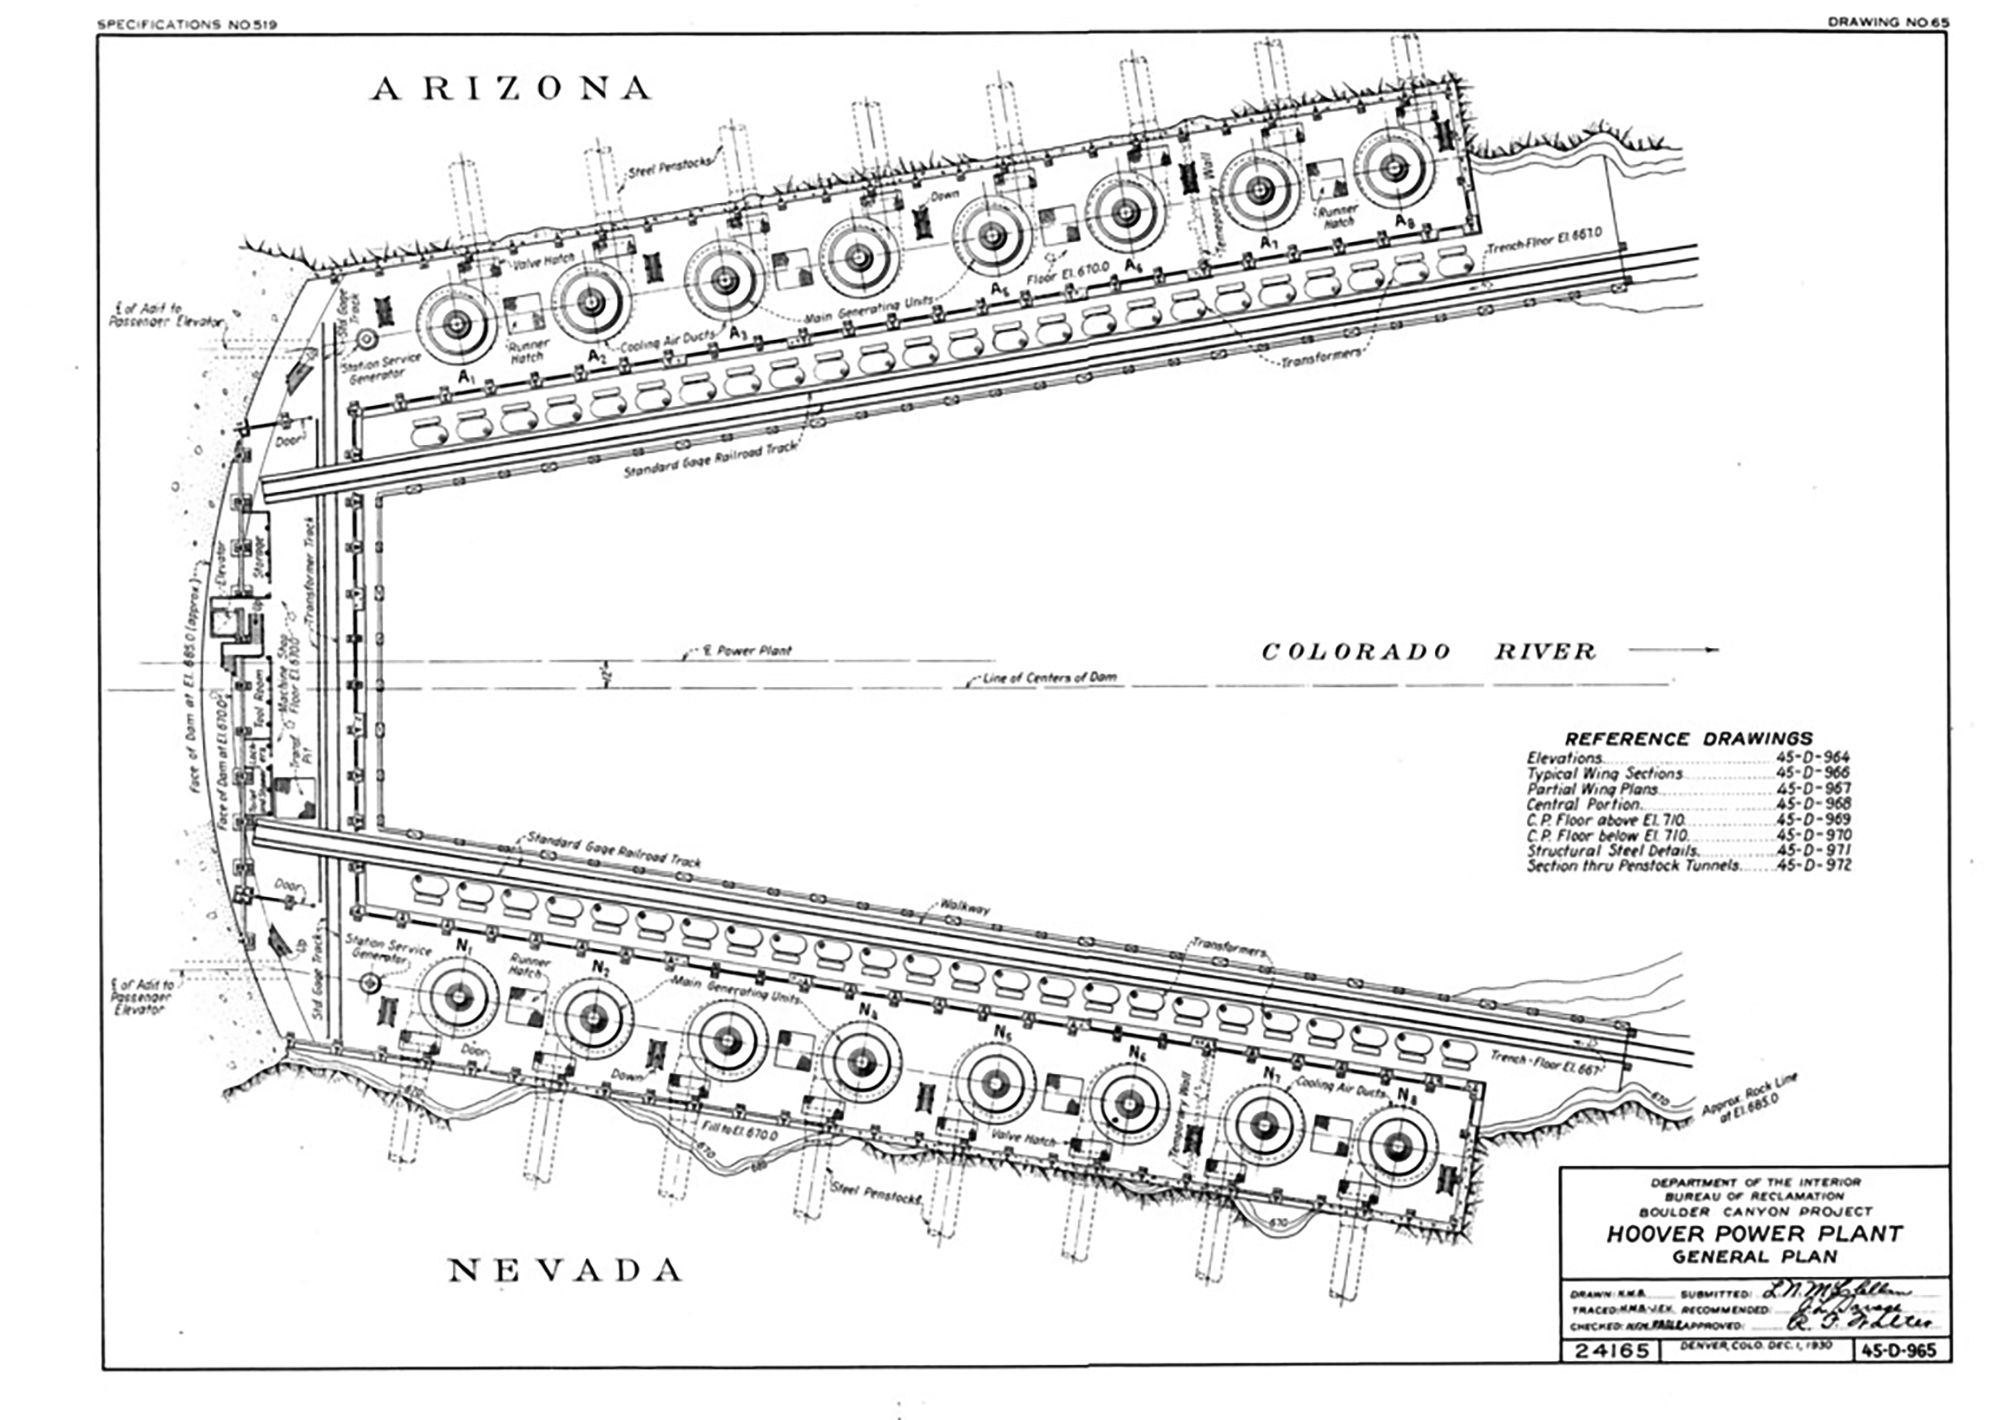 Hoover Dam Six Companies Inc Atlas Of Places Arc Dwgs Power Plant Diagram